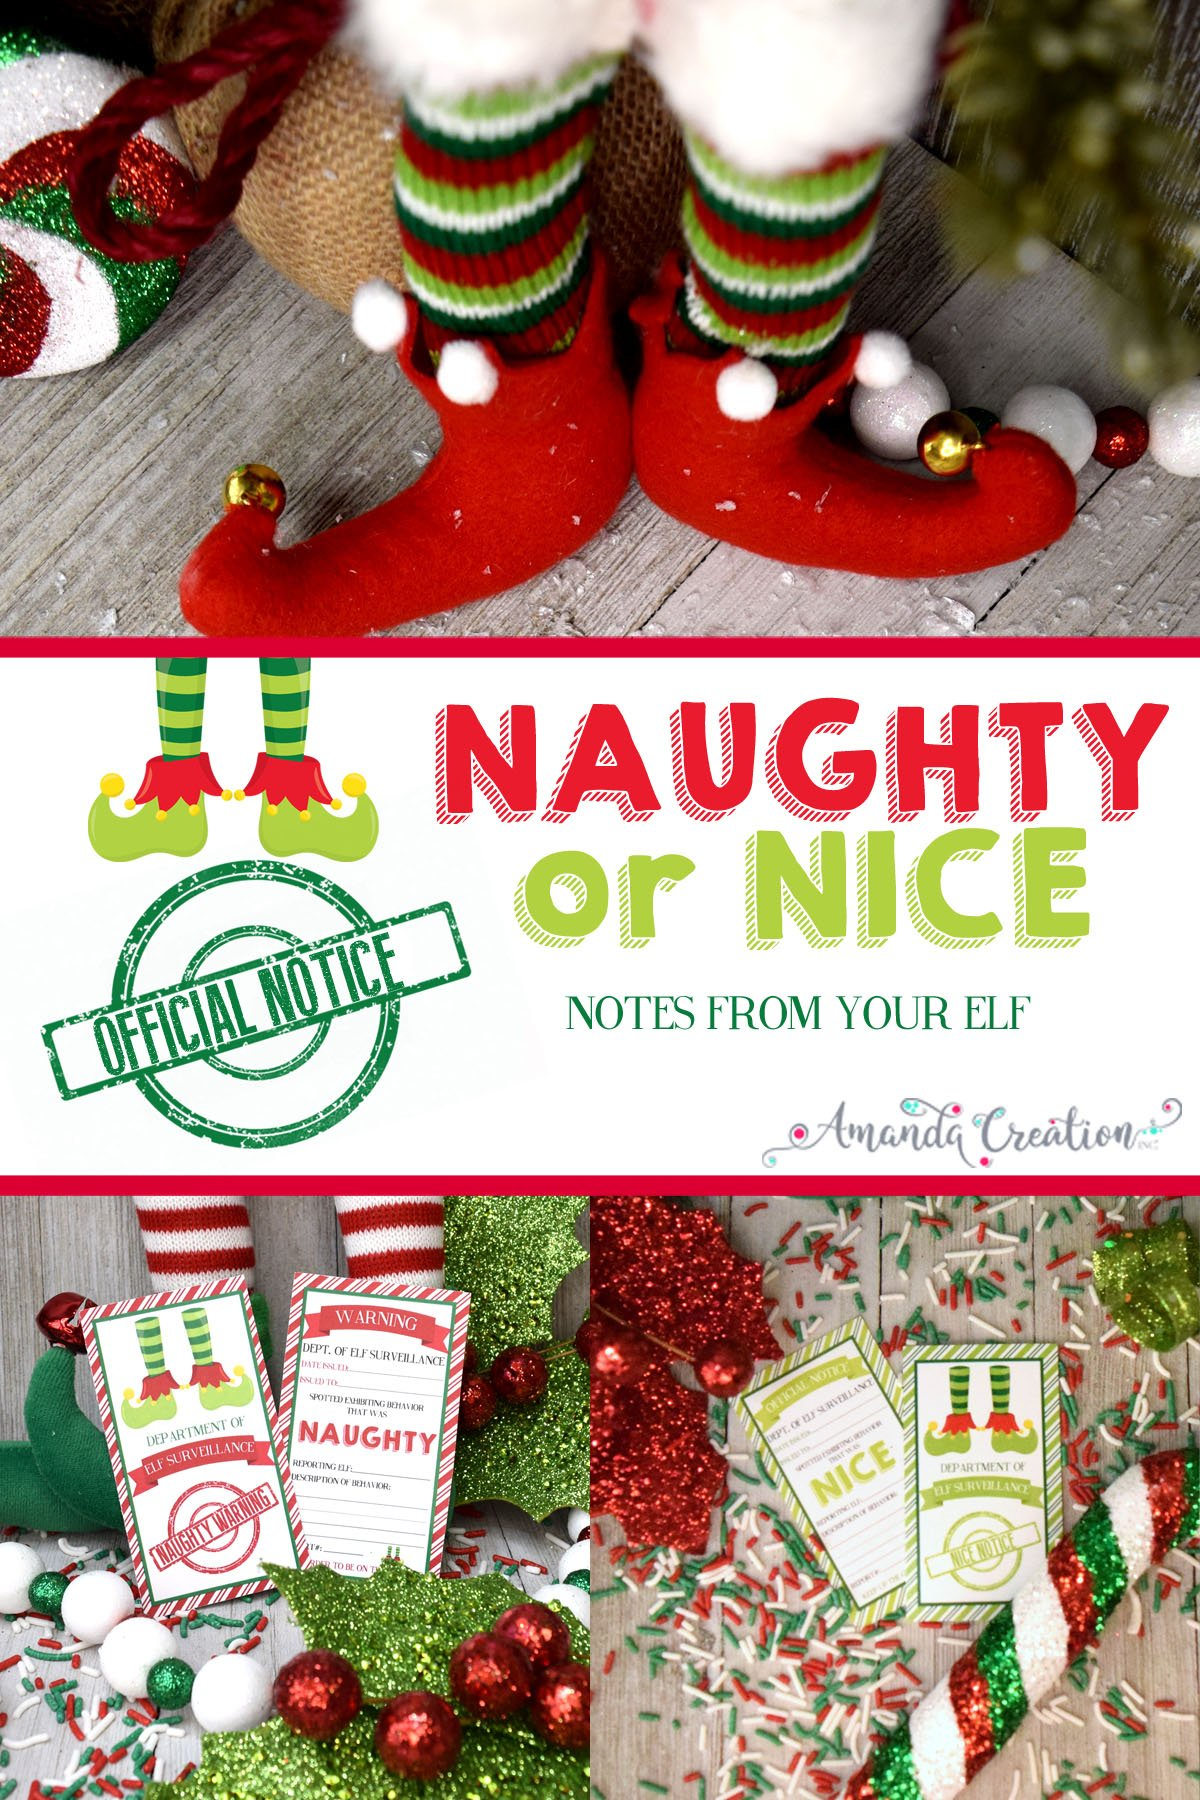 naughty or nice notes from your elf